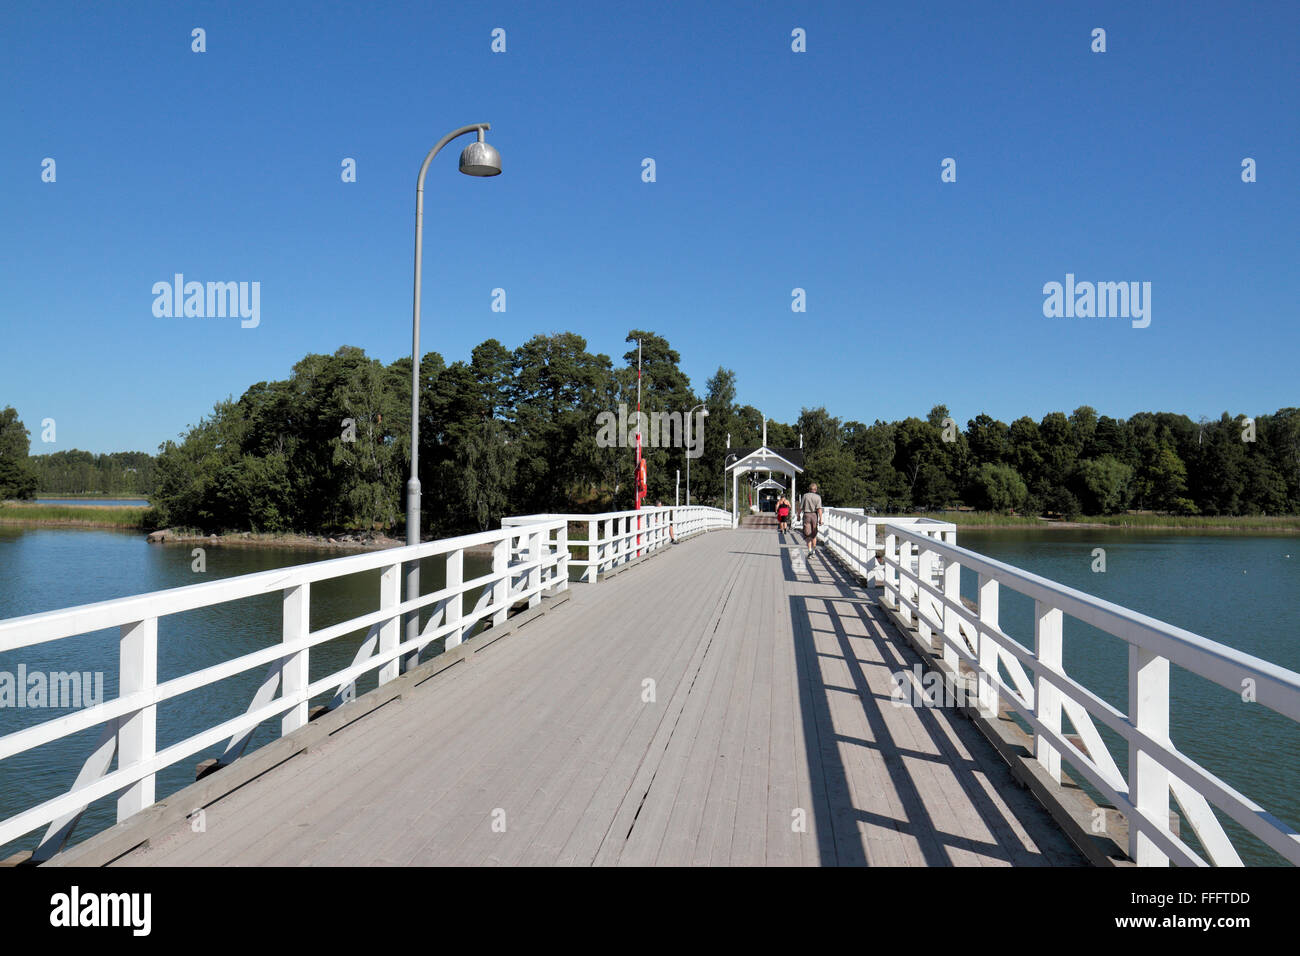 The bridge, with pavilions, linking Seurasaari Island and Open-Air Museum to the mainland, Helsinki, Finland. Stock Photo